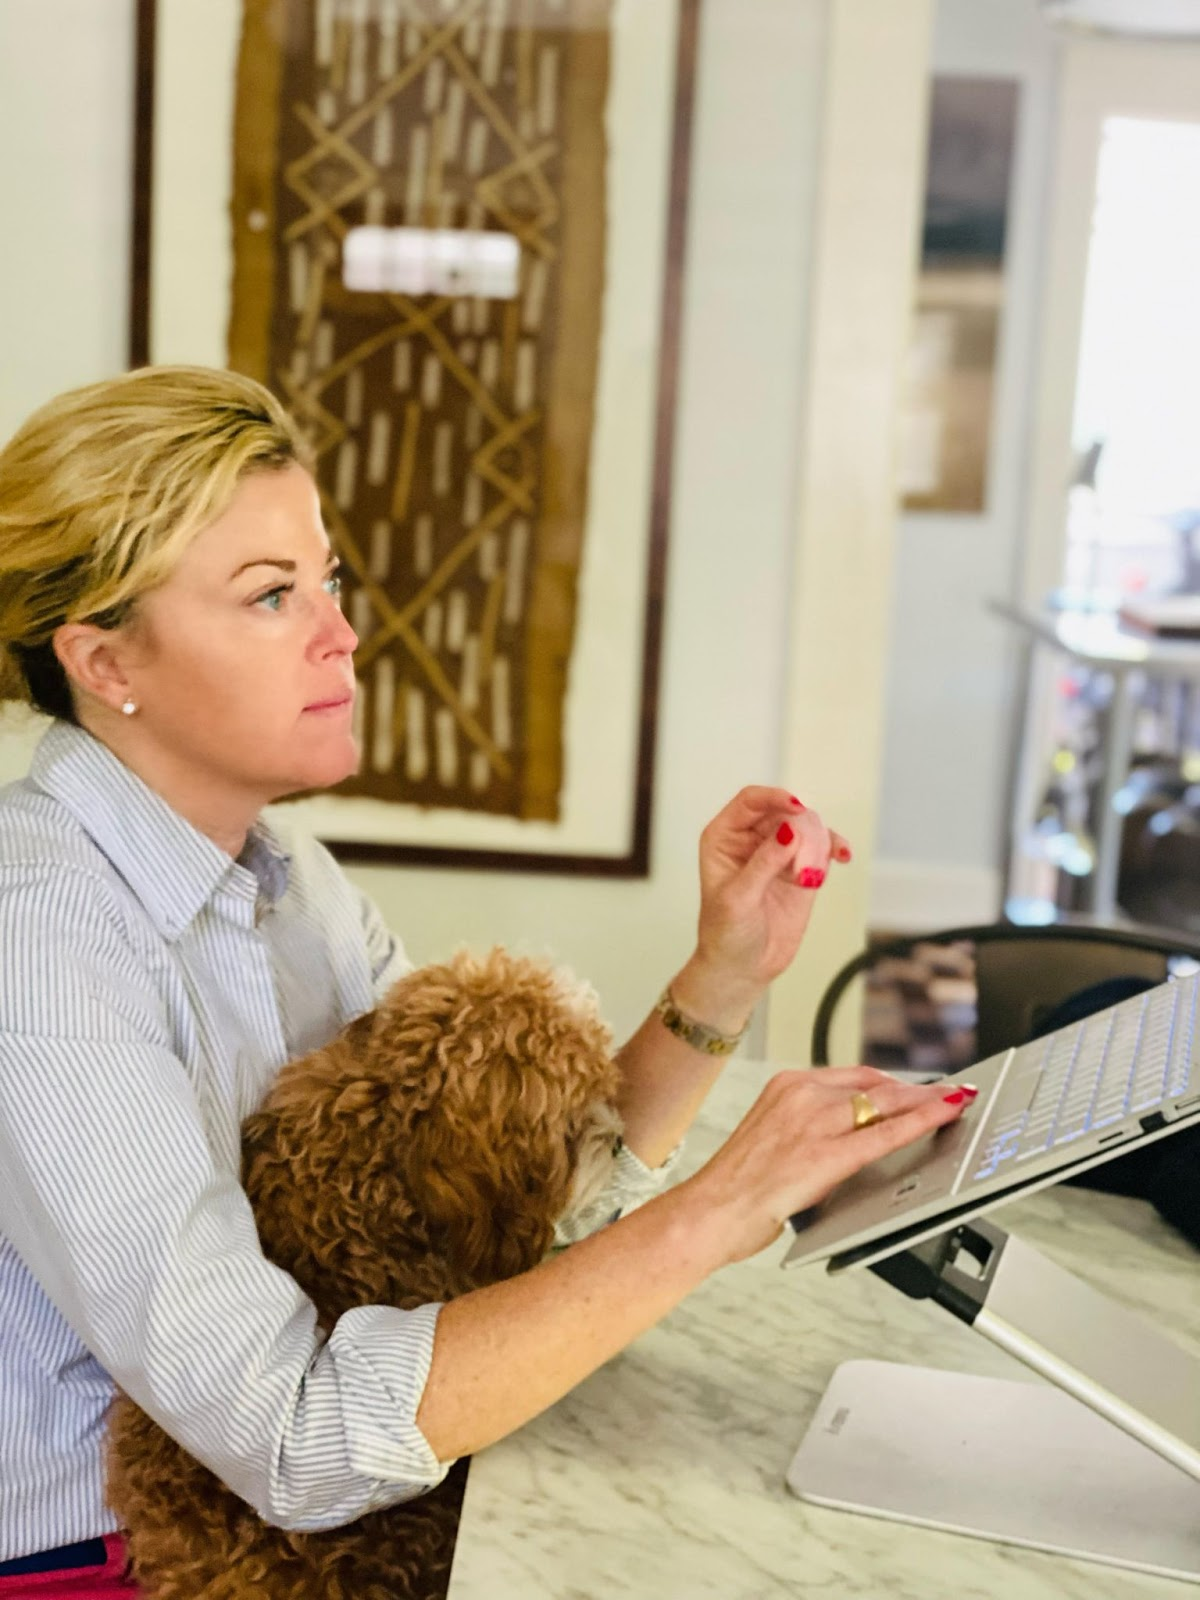 Angela sitting at a table working on a laptop with her fluffy brown puppy in her lap